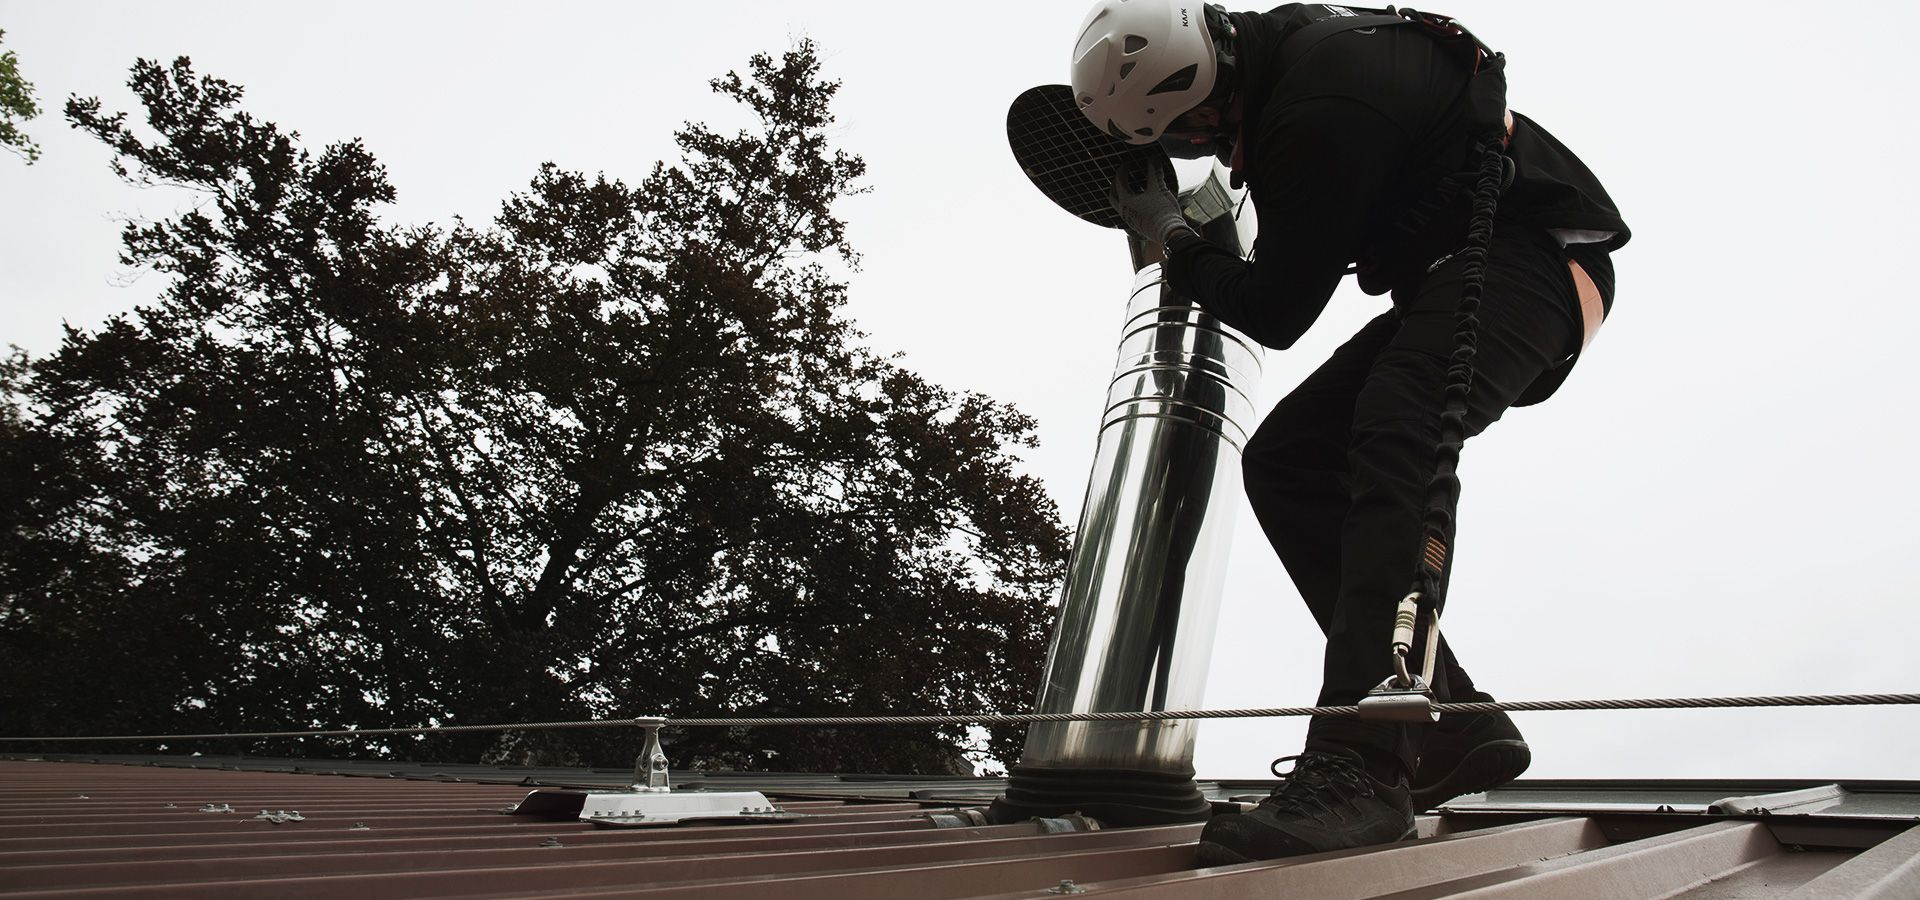 Securing the Kraizbierg window cleaning